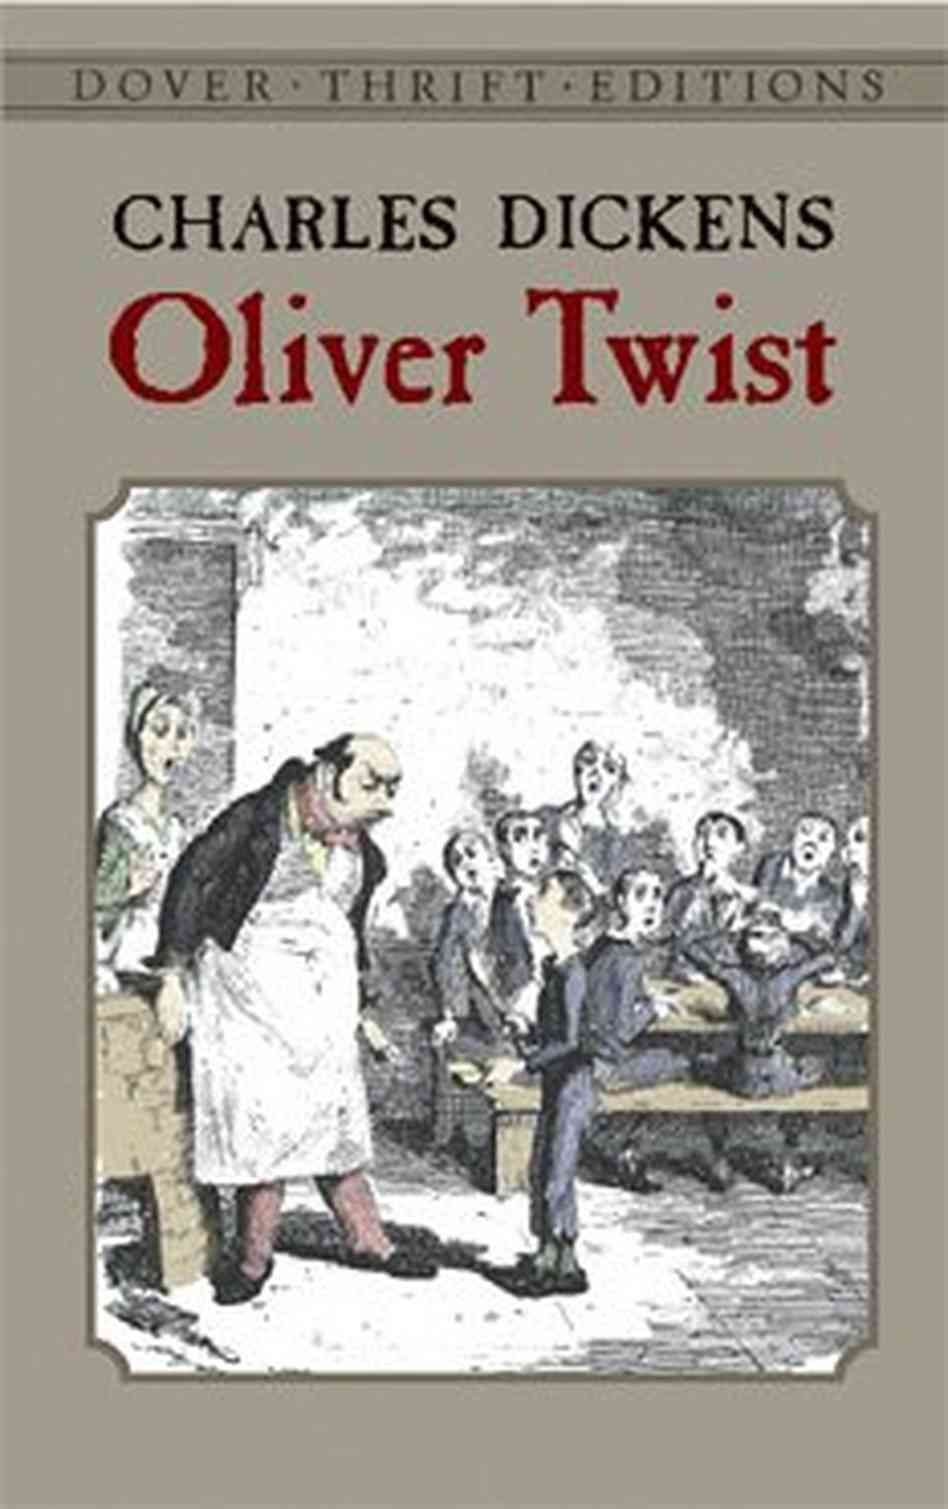 Novels by Charles Dickens Listed by Publication Date